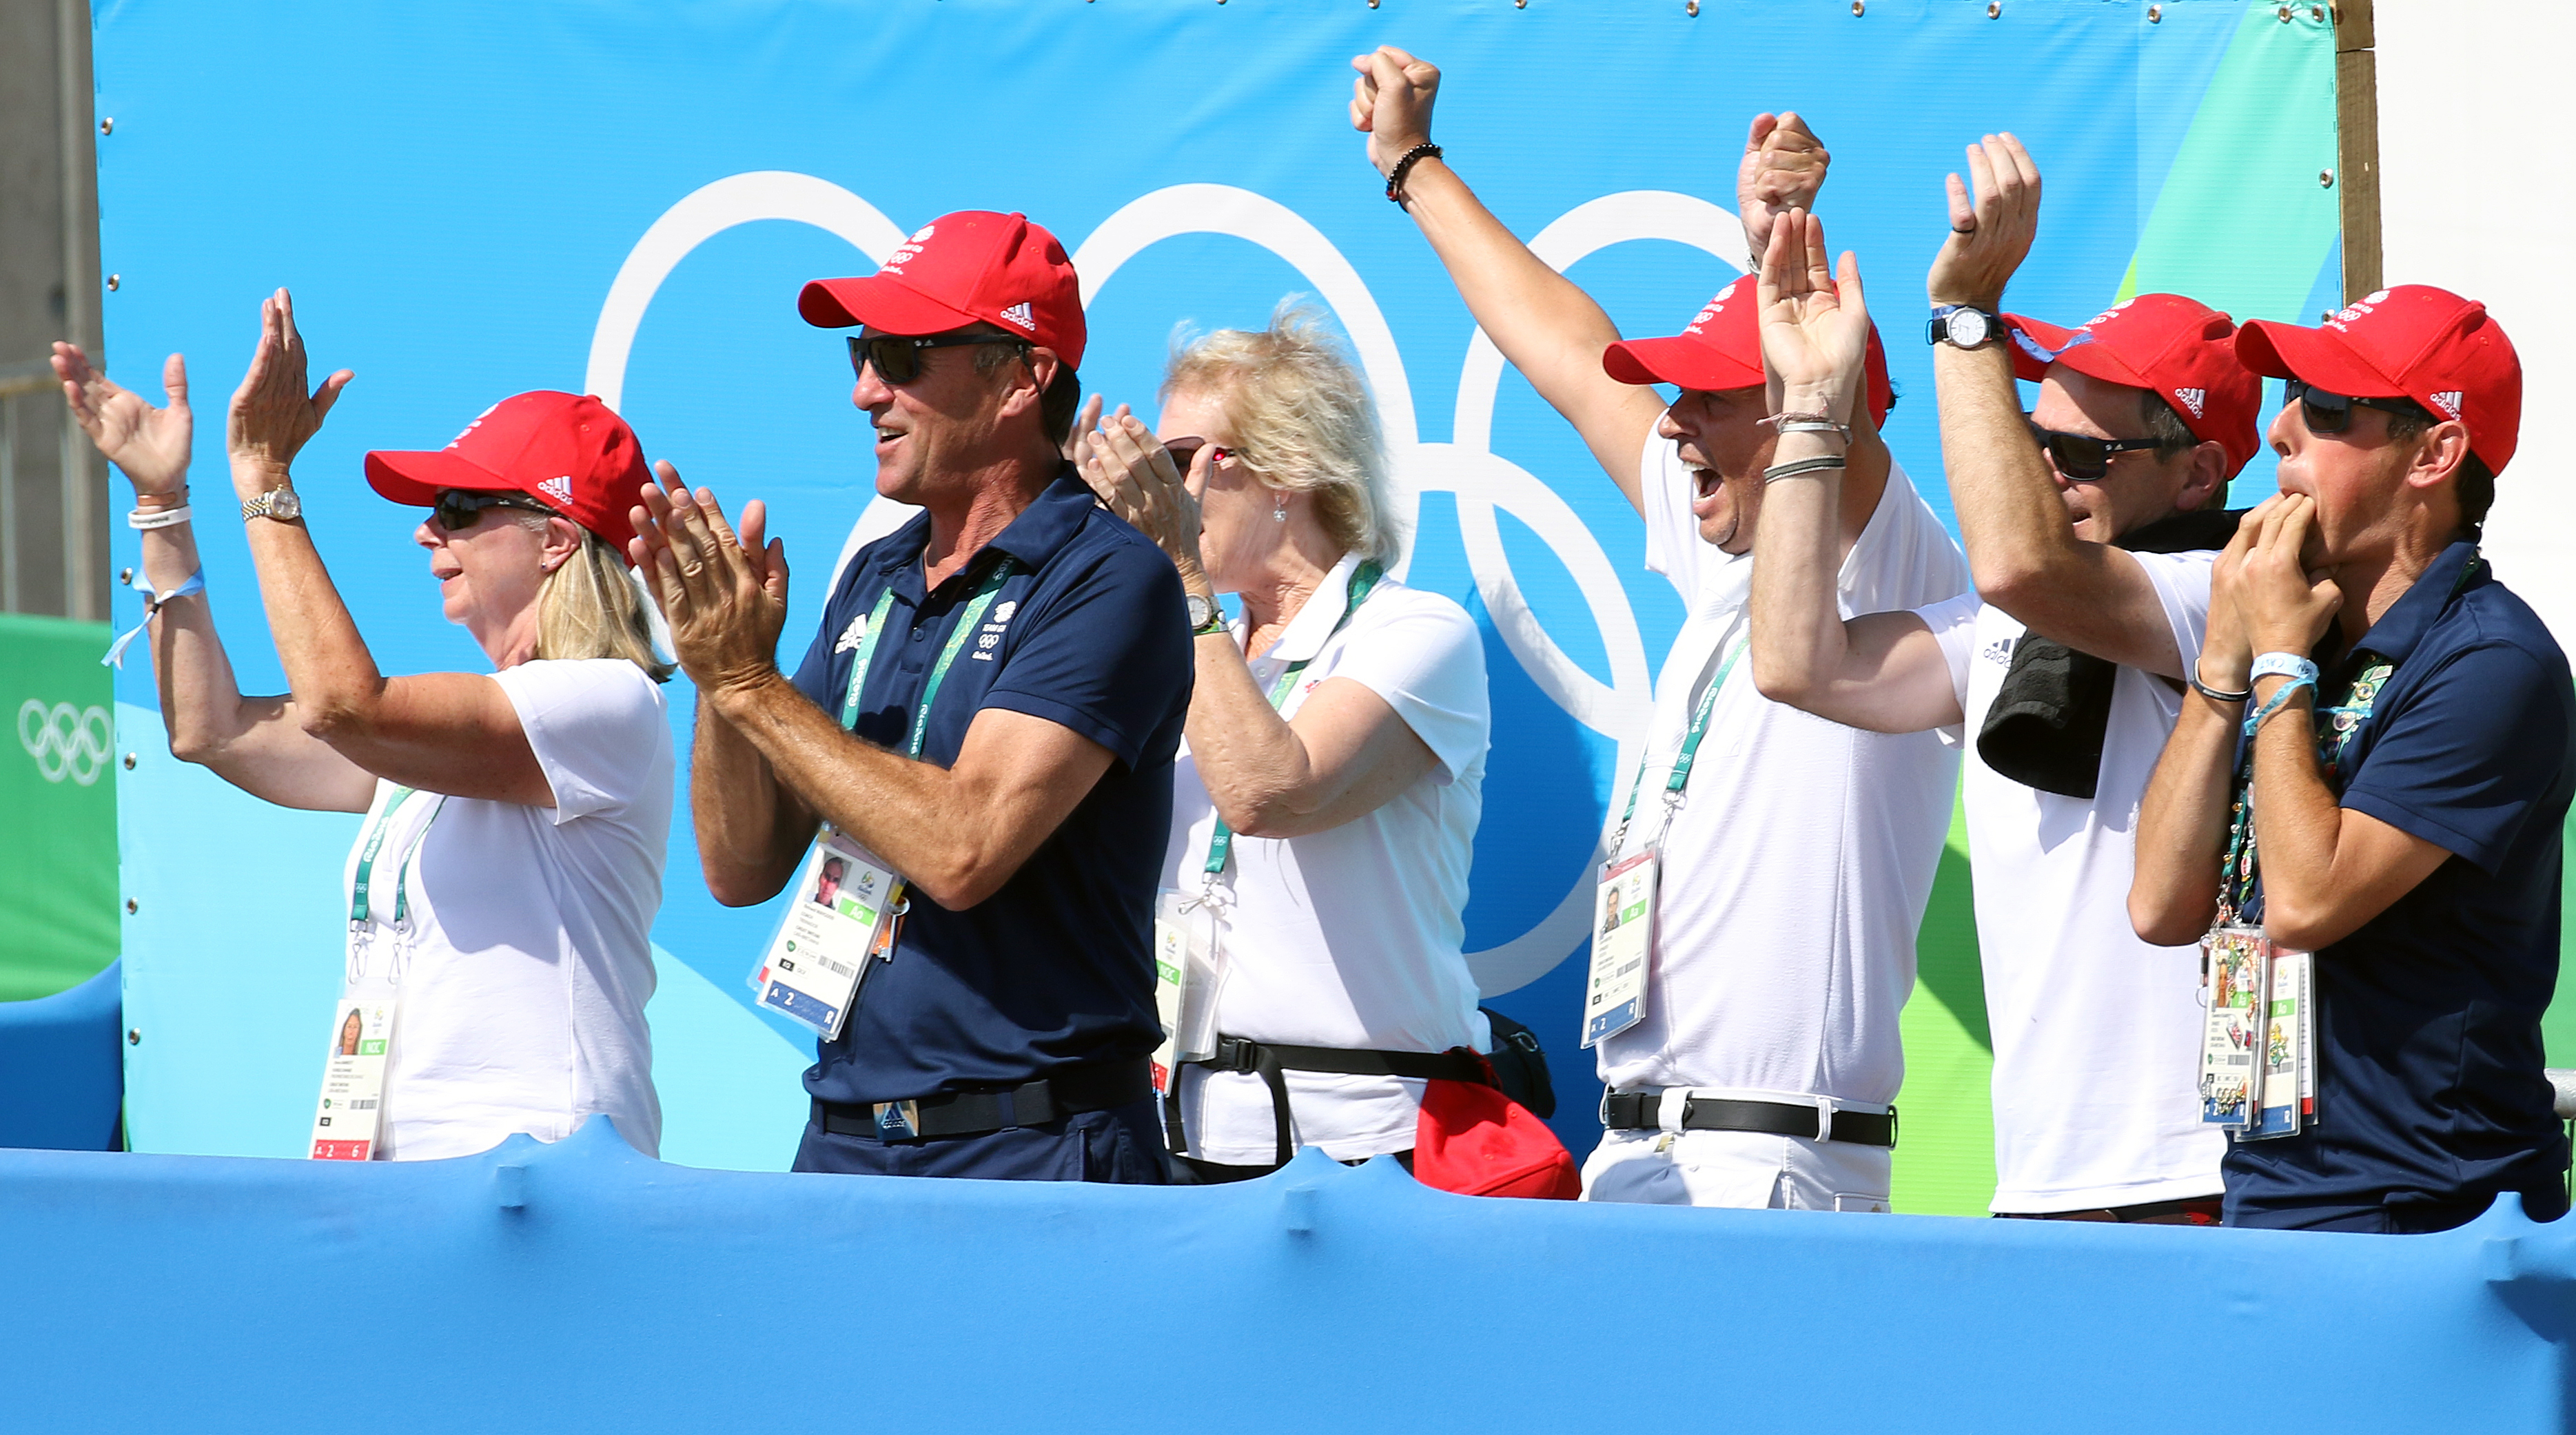 The Valegro/Charlotte Dujardin support group--Carl hester, part-owner, trainer and team mate is the one with hands held highest after the Grand Prix Freestyle to earn the British pair their second Olympic individual gold medal. © 2016 Ken Braddick/dressage-news.com